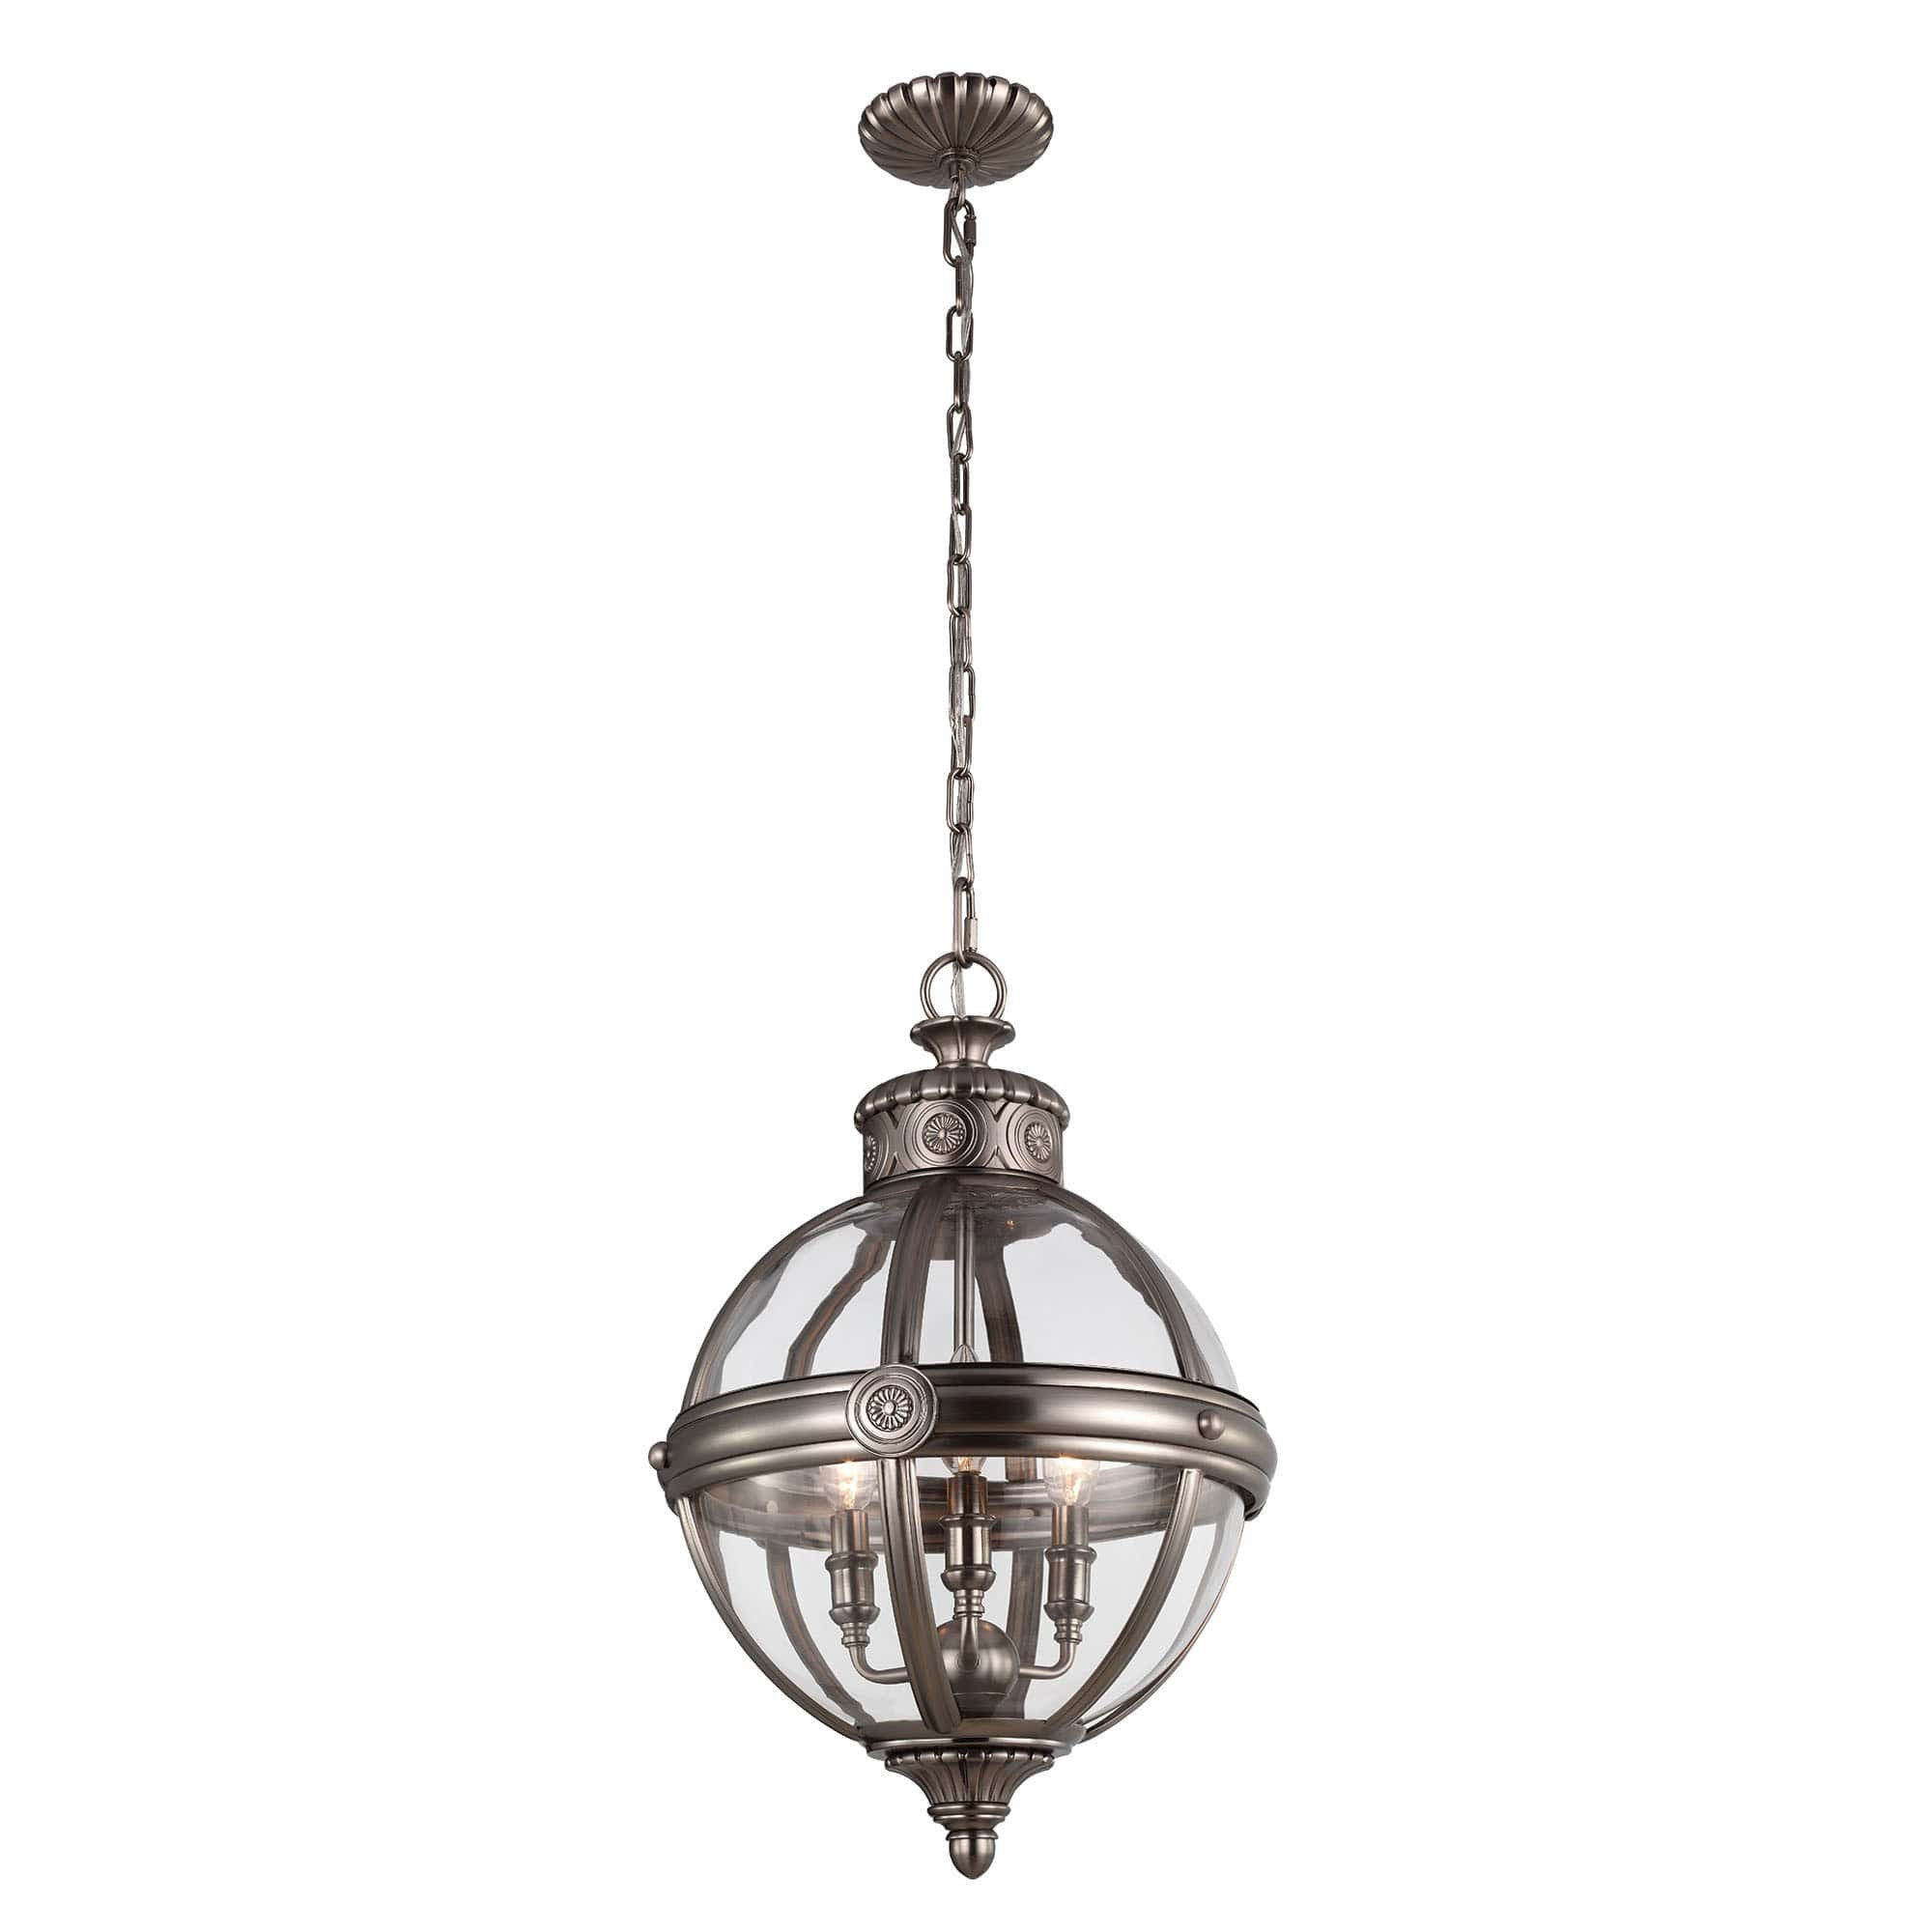 Feiss Adams 3 Light Nickel Glass Orb Candle Pendant